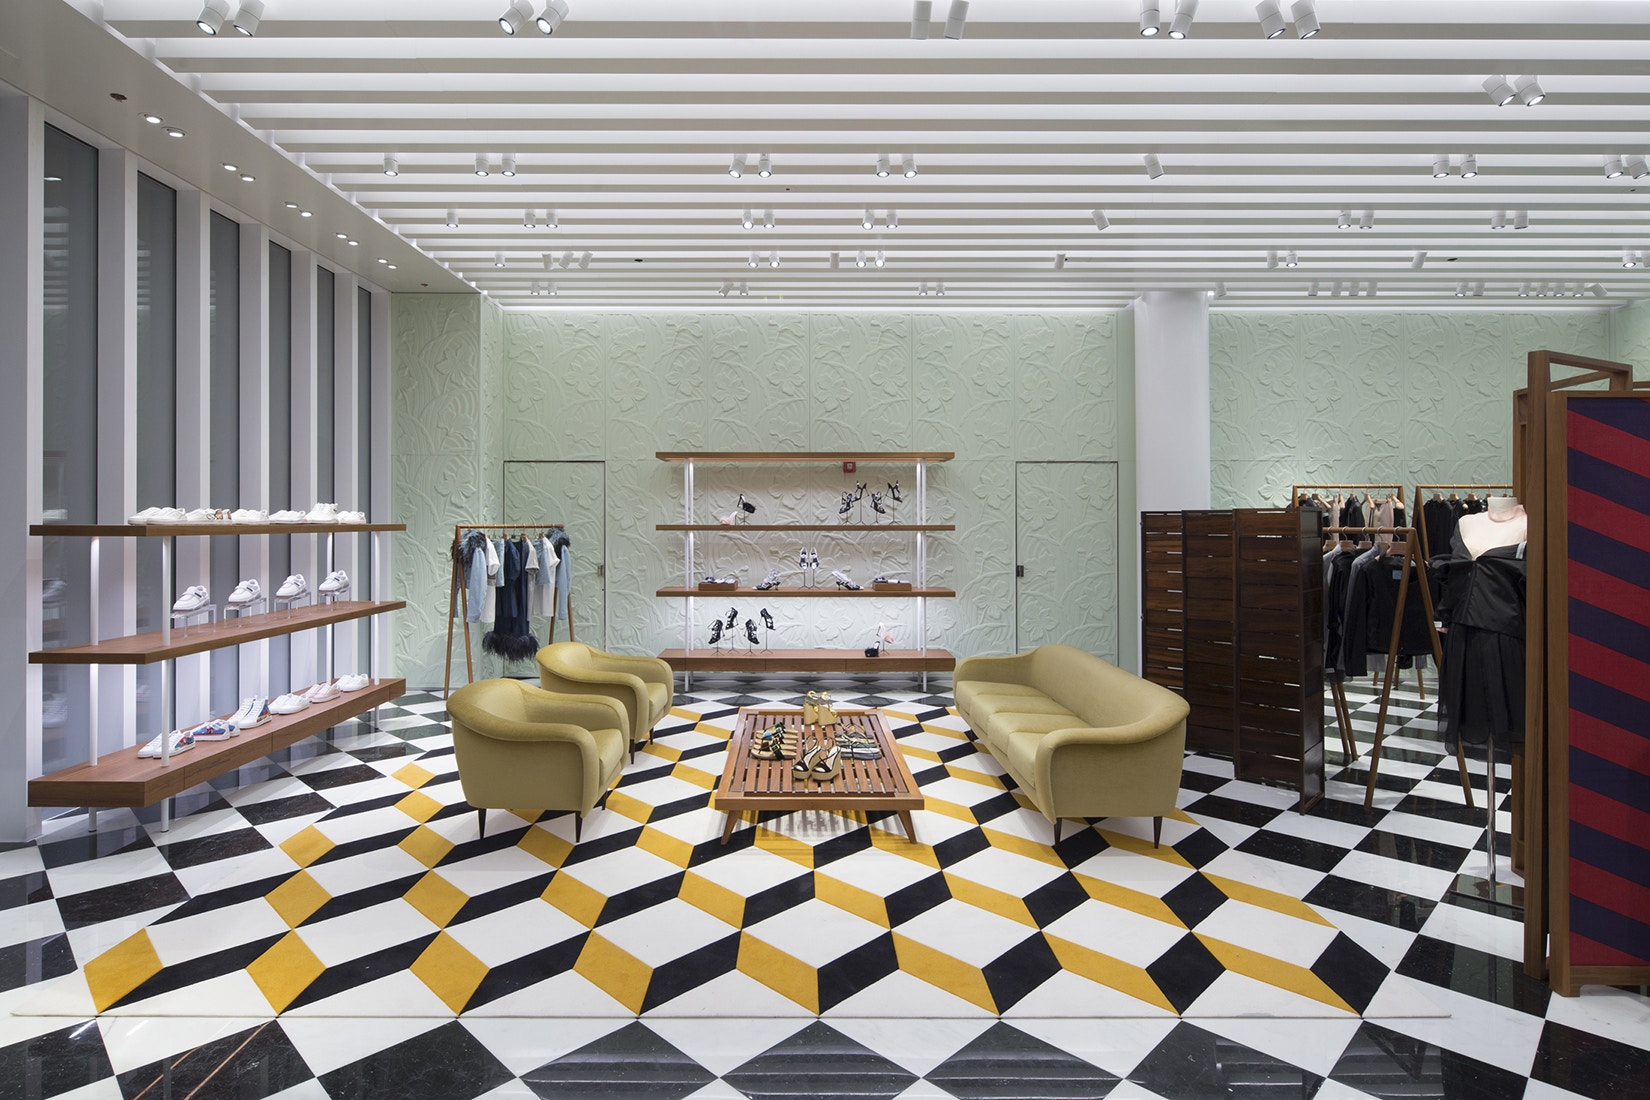 prada-design-district-store-opens-in-miami-3.jpg